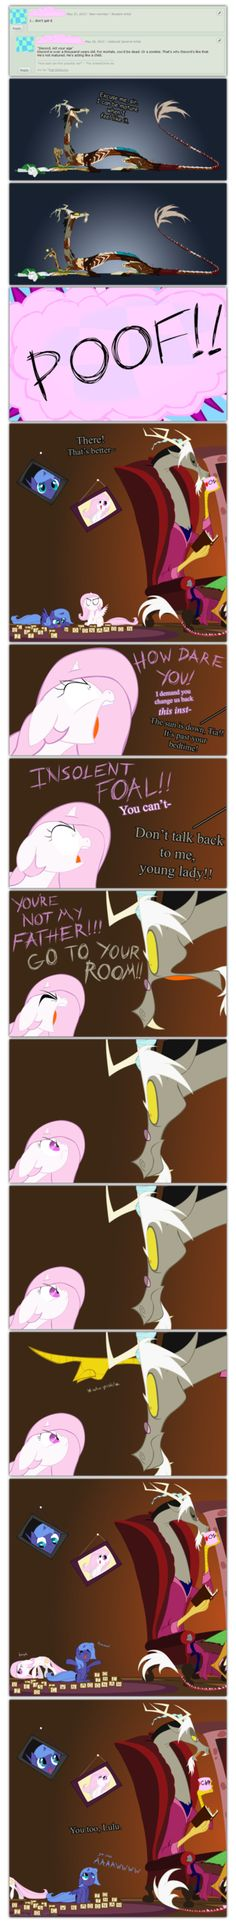 No Maturity Here Either by grievousfan on deviantART